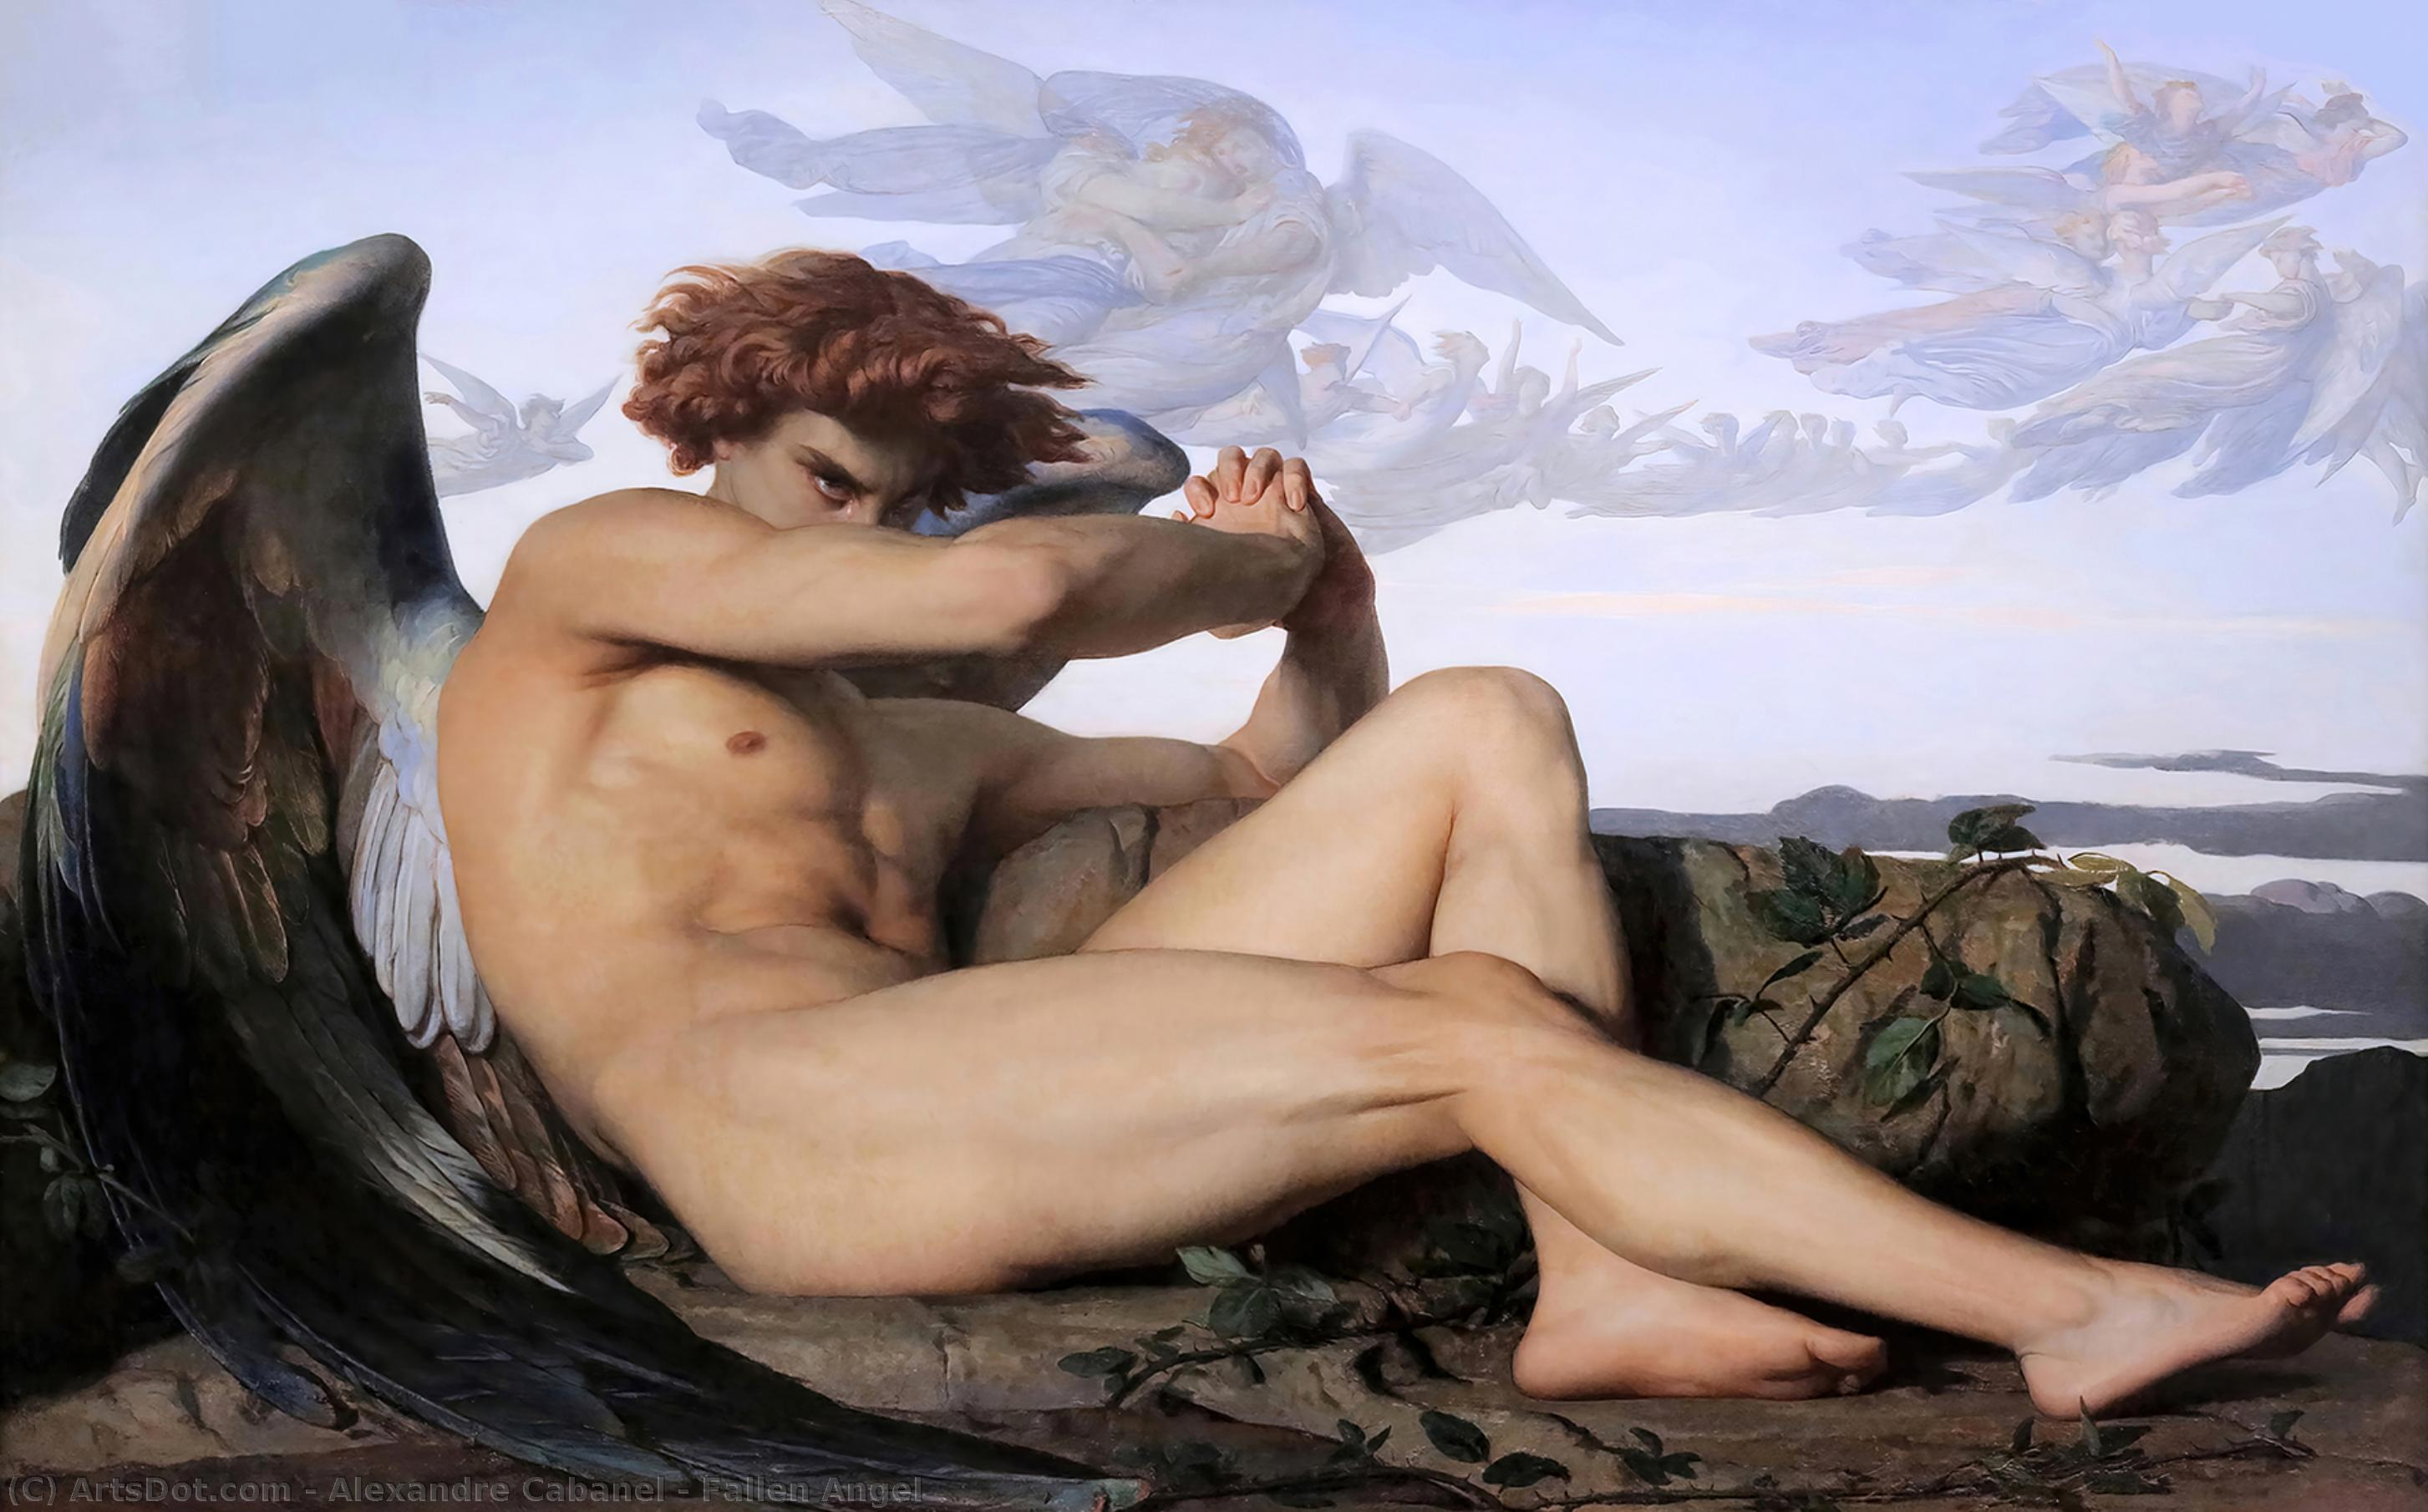 Wikioo.org - The Encyclopedia of Fine Arts - Painting, Artwork by Alexandre Cabanel - Fallen Angel